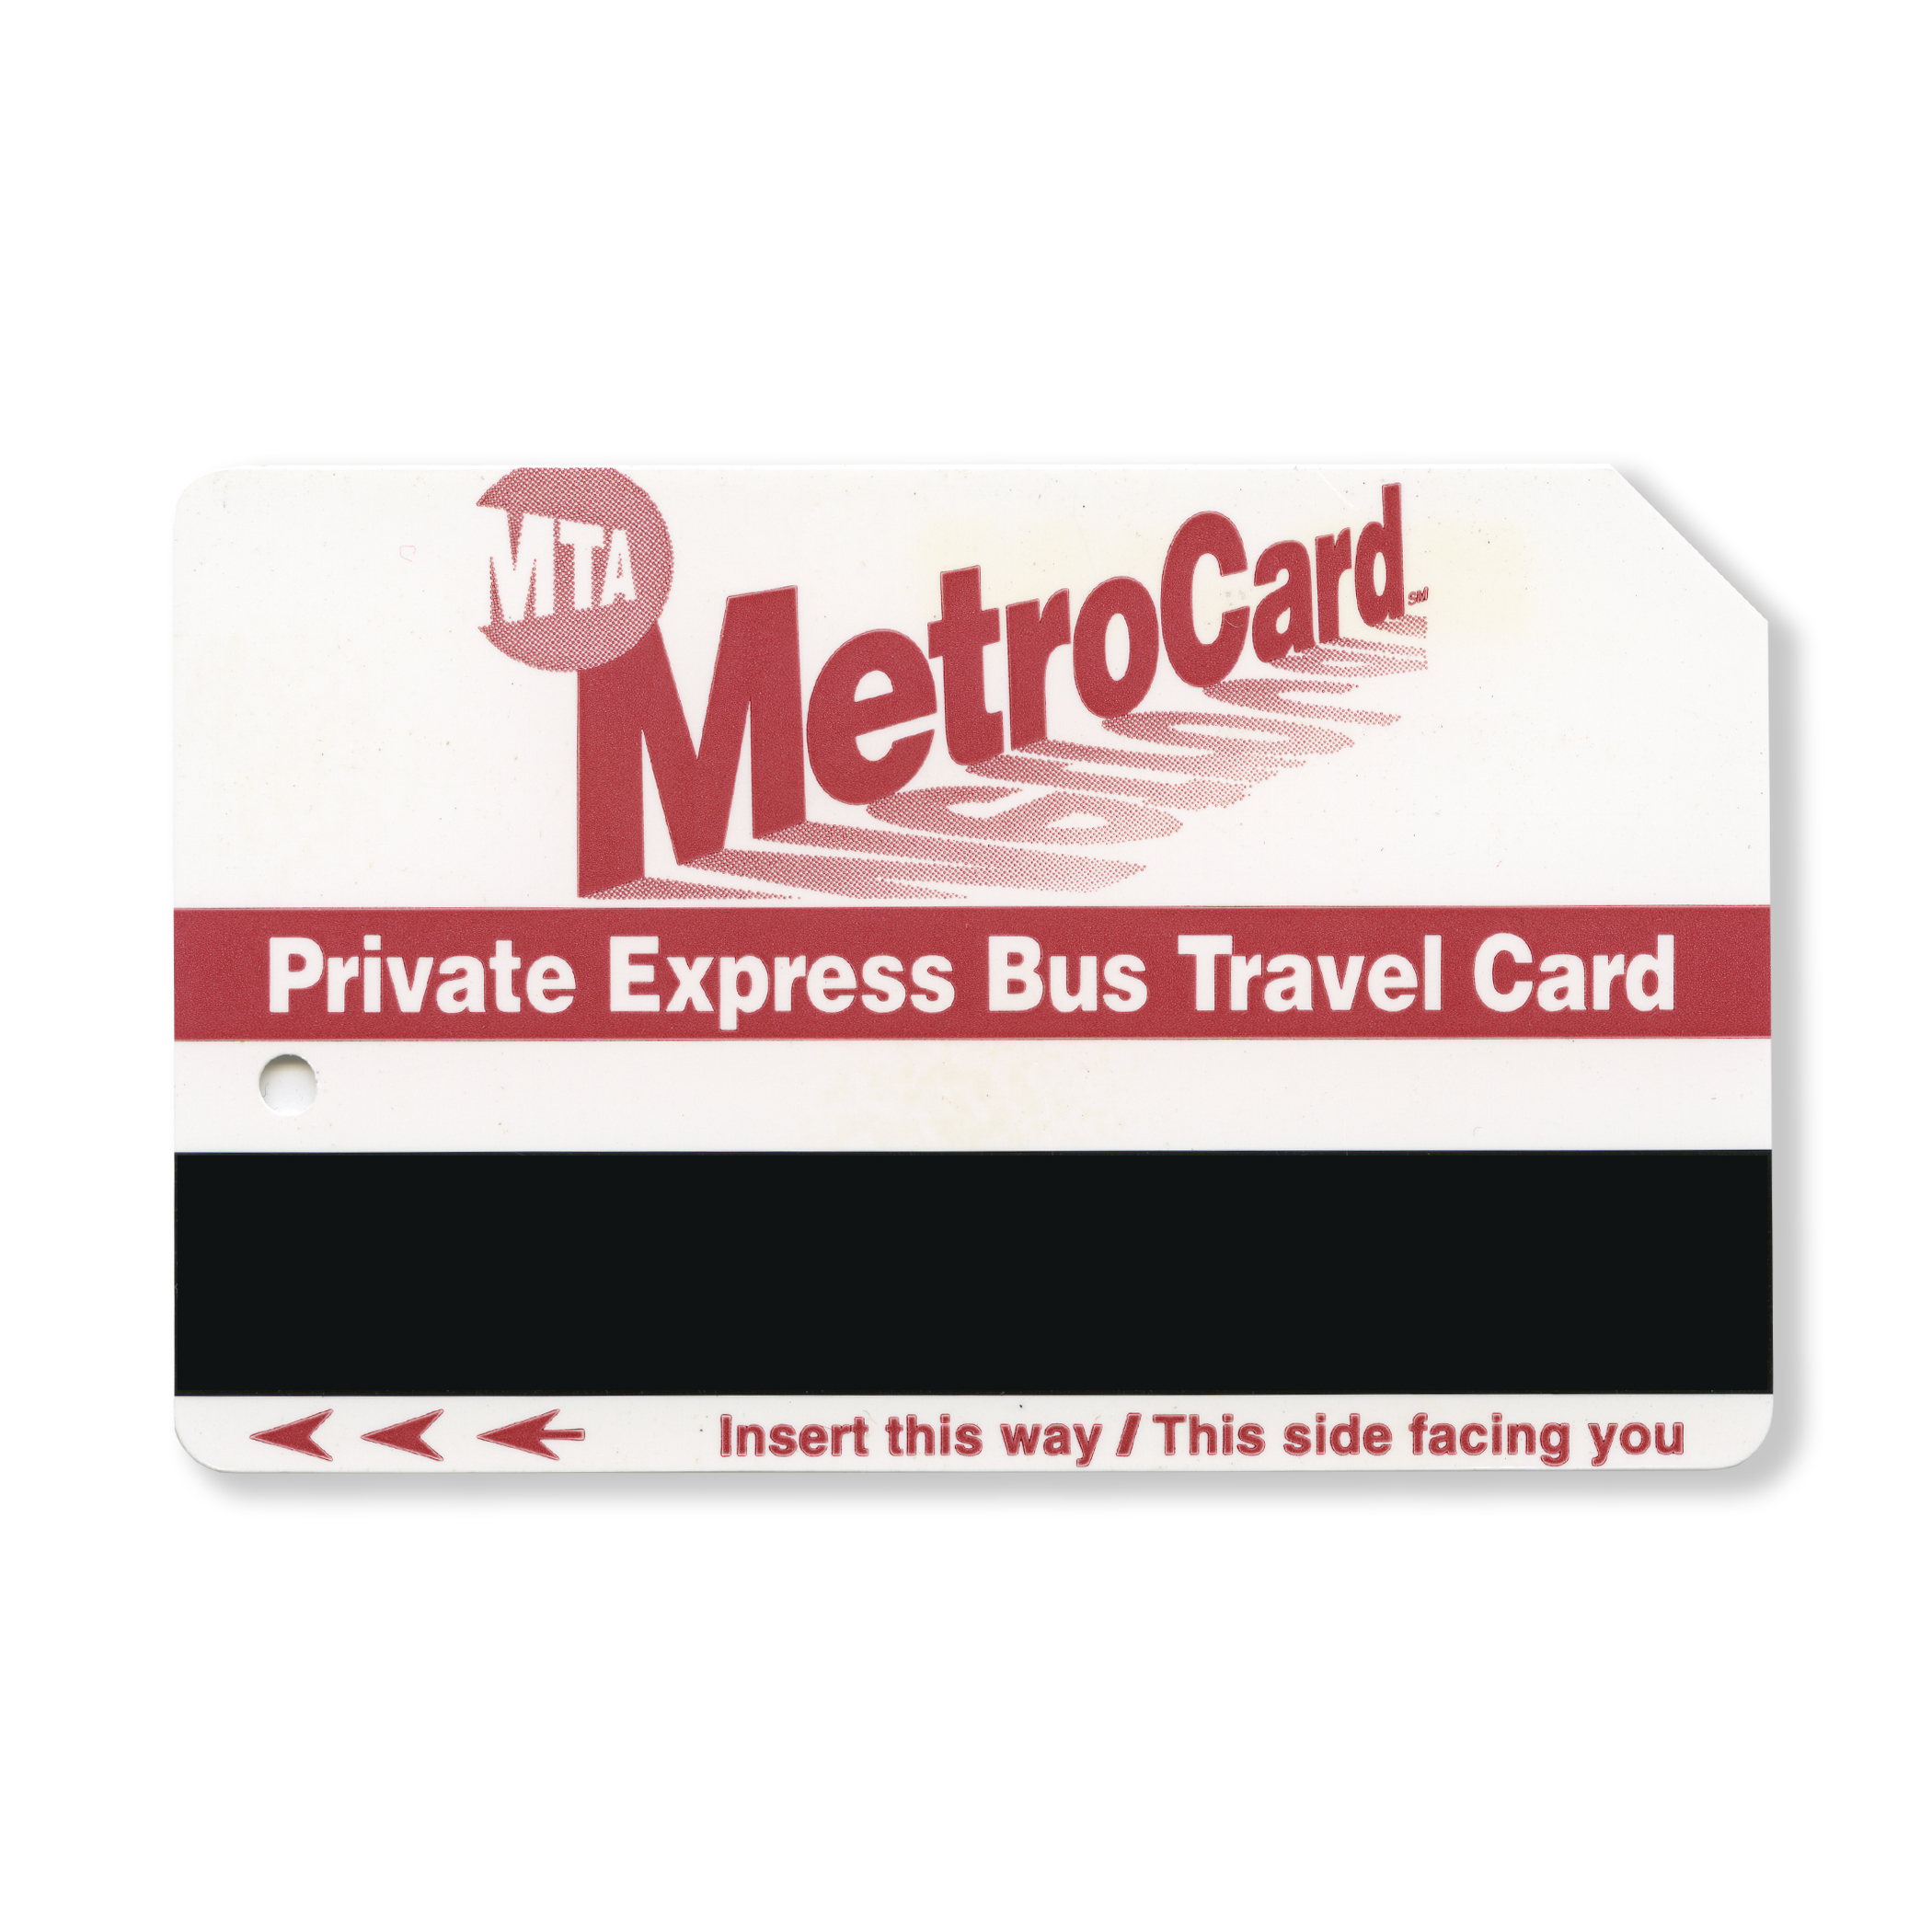 the_nycta_project_1997_private_express_bus_travel_metrocard 2.jpg